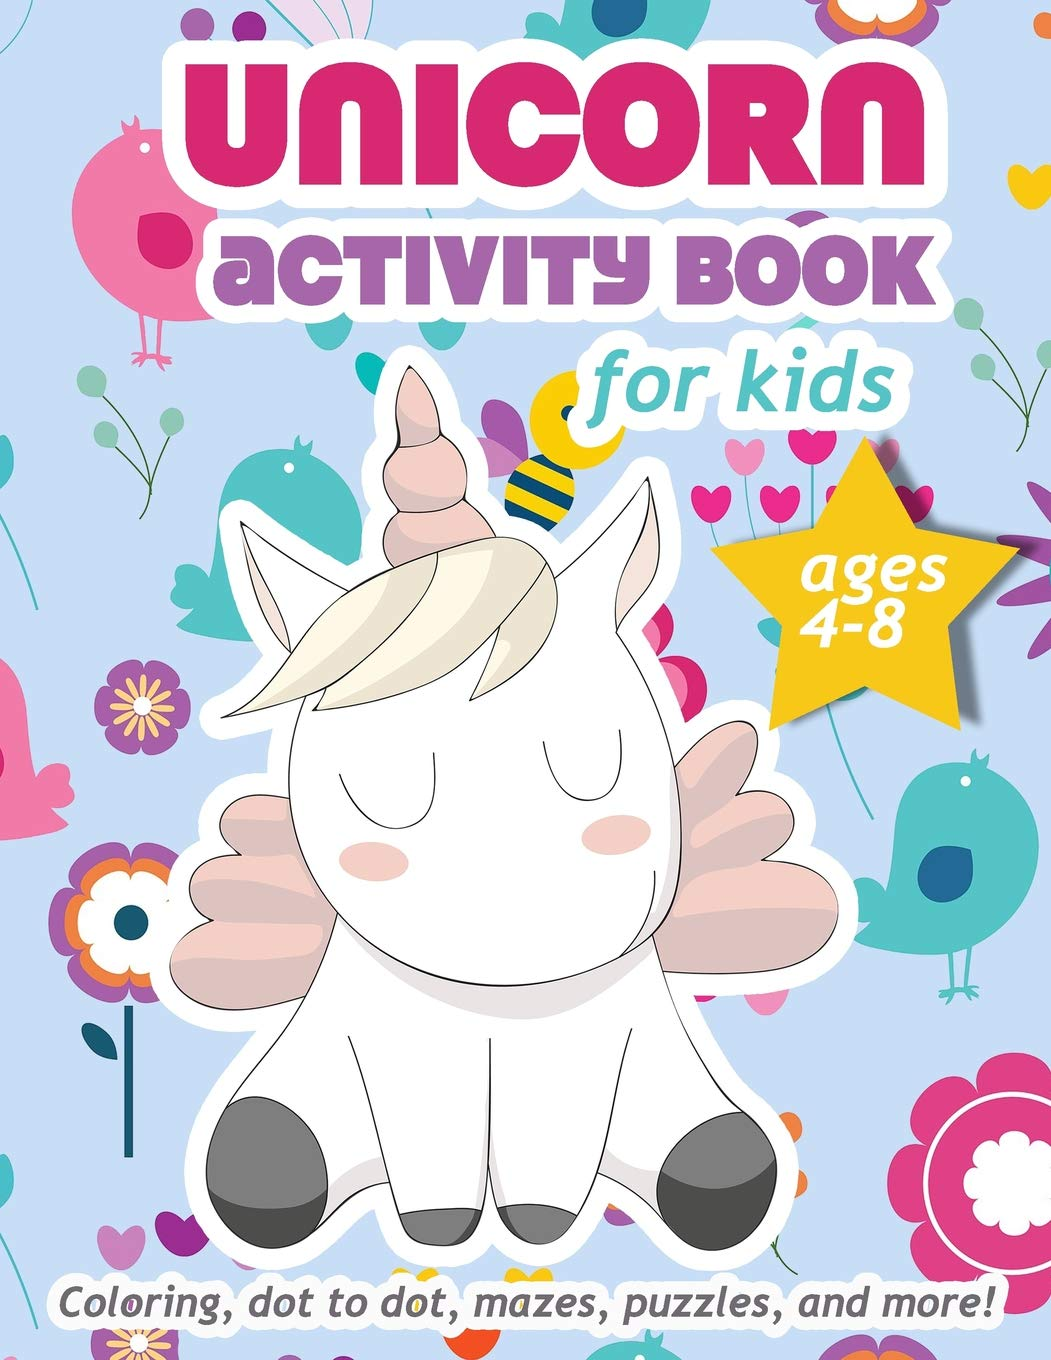 Unicorn Activity Book For Kids Ages 4 8 100 Pages Of Fun Educational Activities For Kids 8 5 X 11 Inches Creative Journals Zone365 Creative Journals Zone365 9781095729946 Amazon Com Books